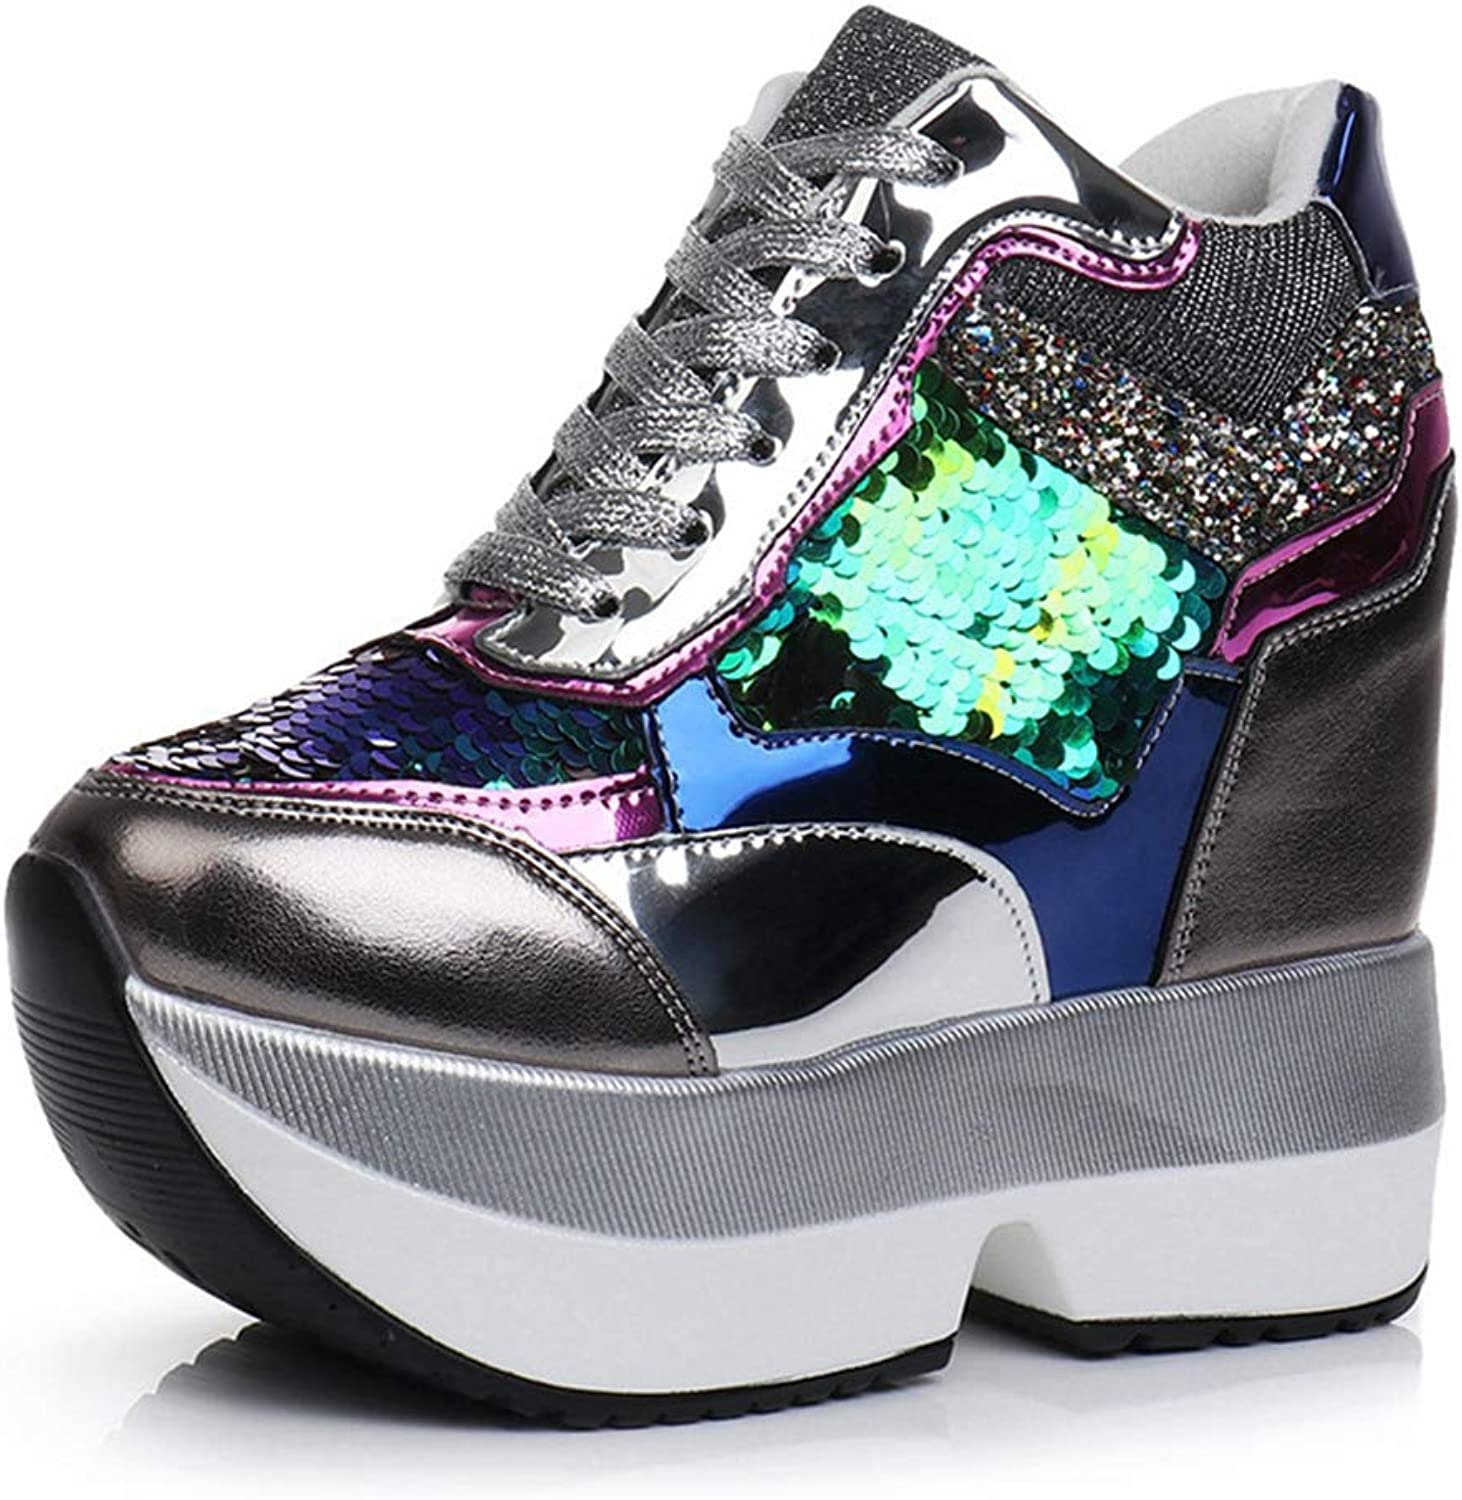 CYBLING Women's Sparkle Sequins High Top Wedge Fashion Sneakers Hidden Heel Platform Casual shoes